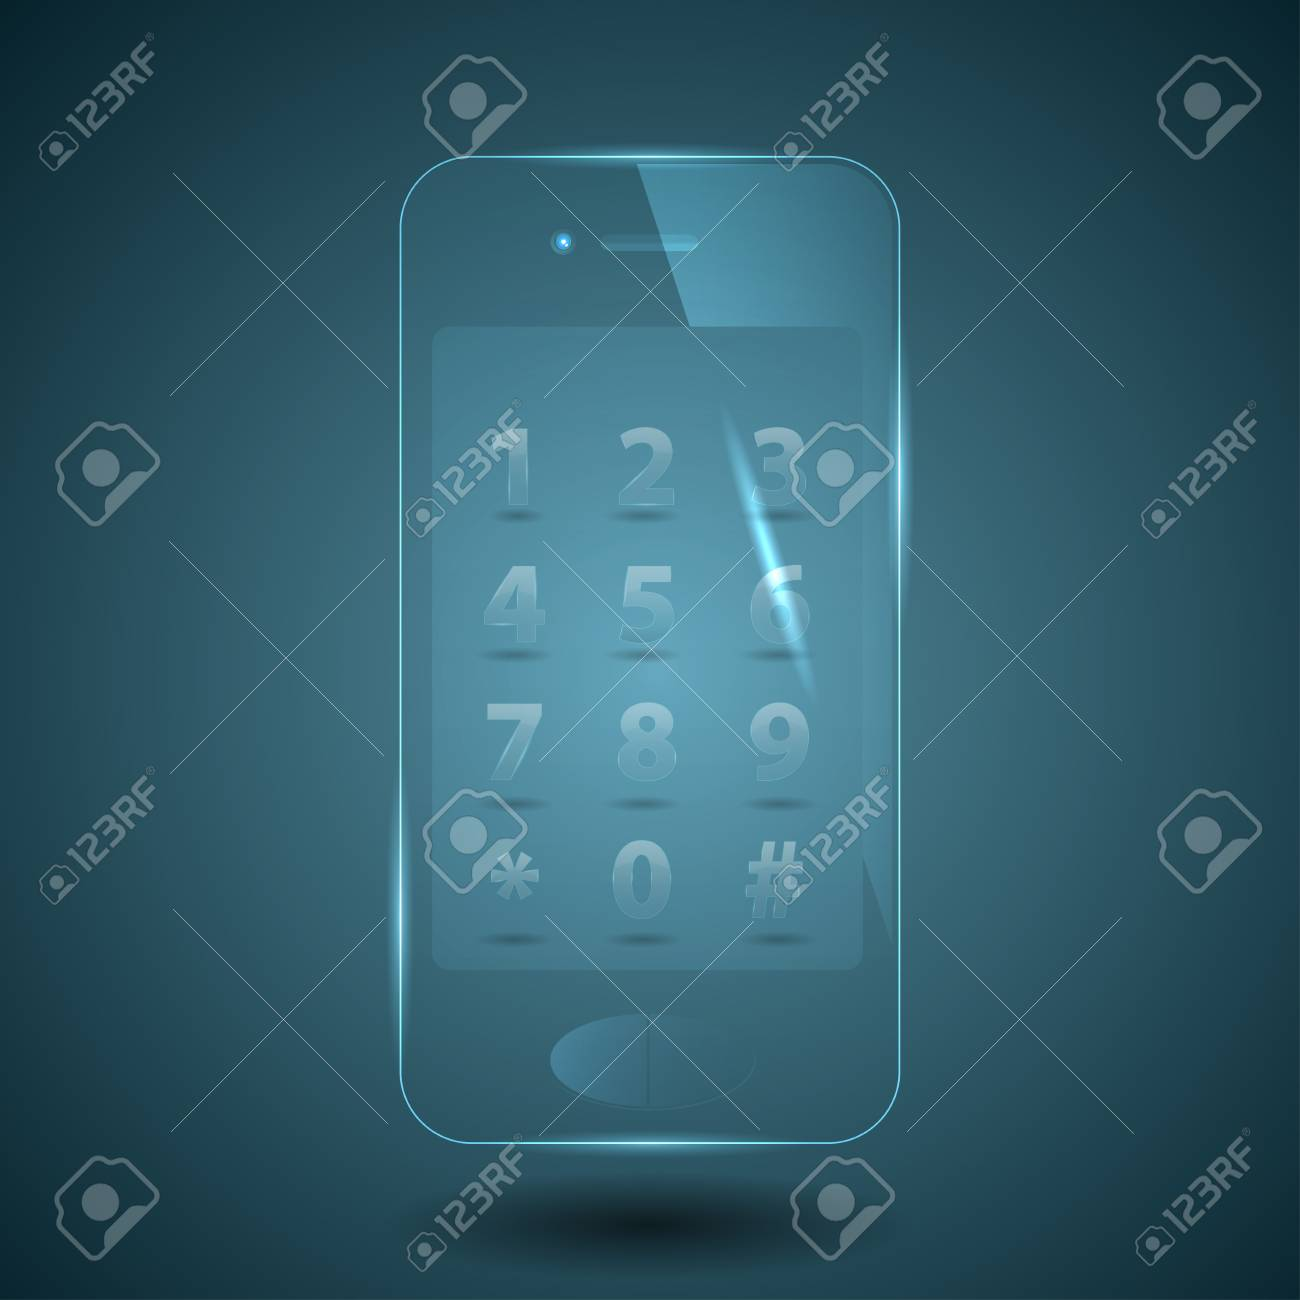 vector illustration of a glass smart phone Stock Vector - 18931032